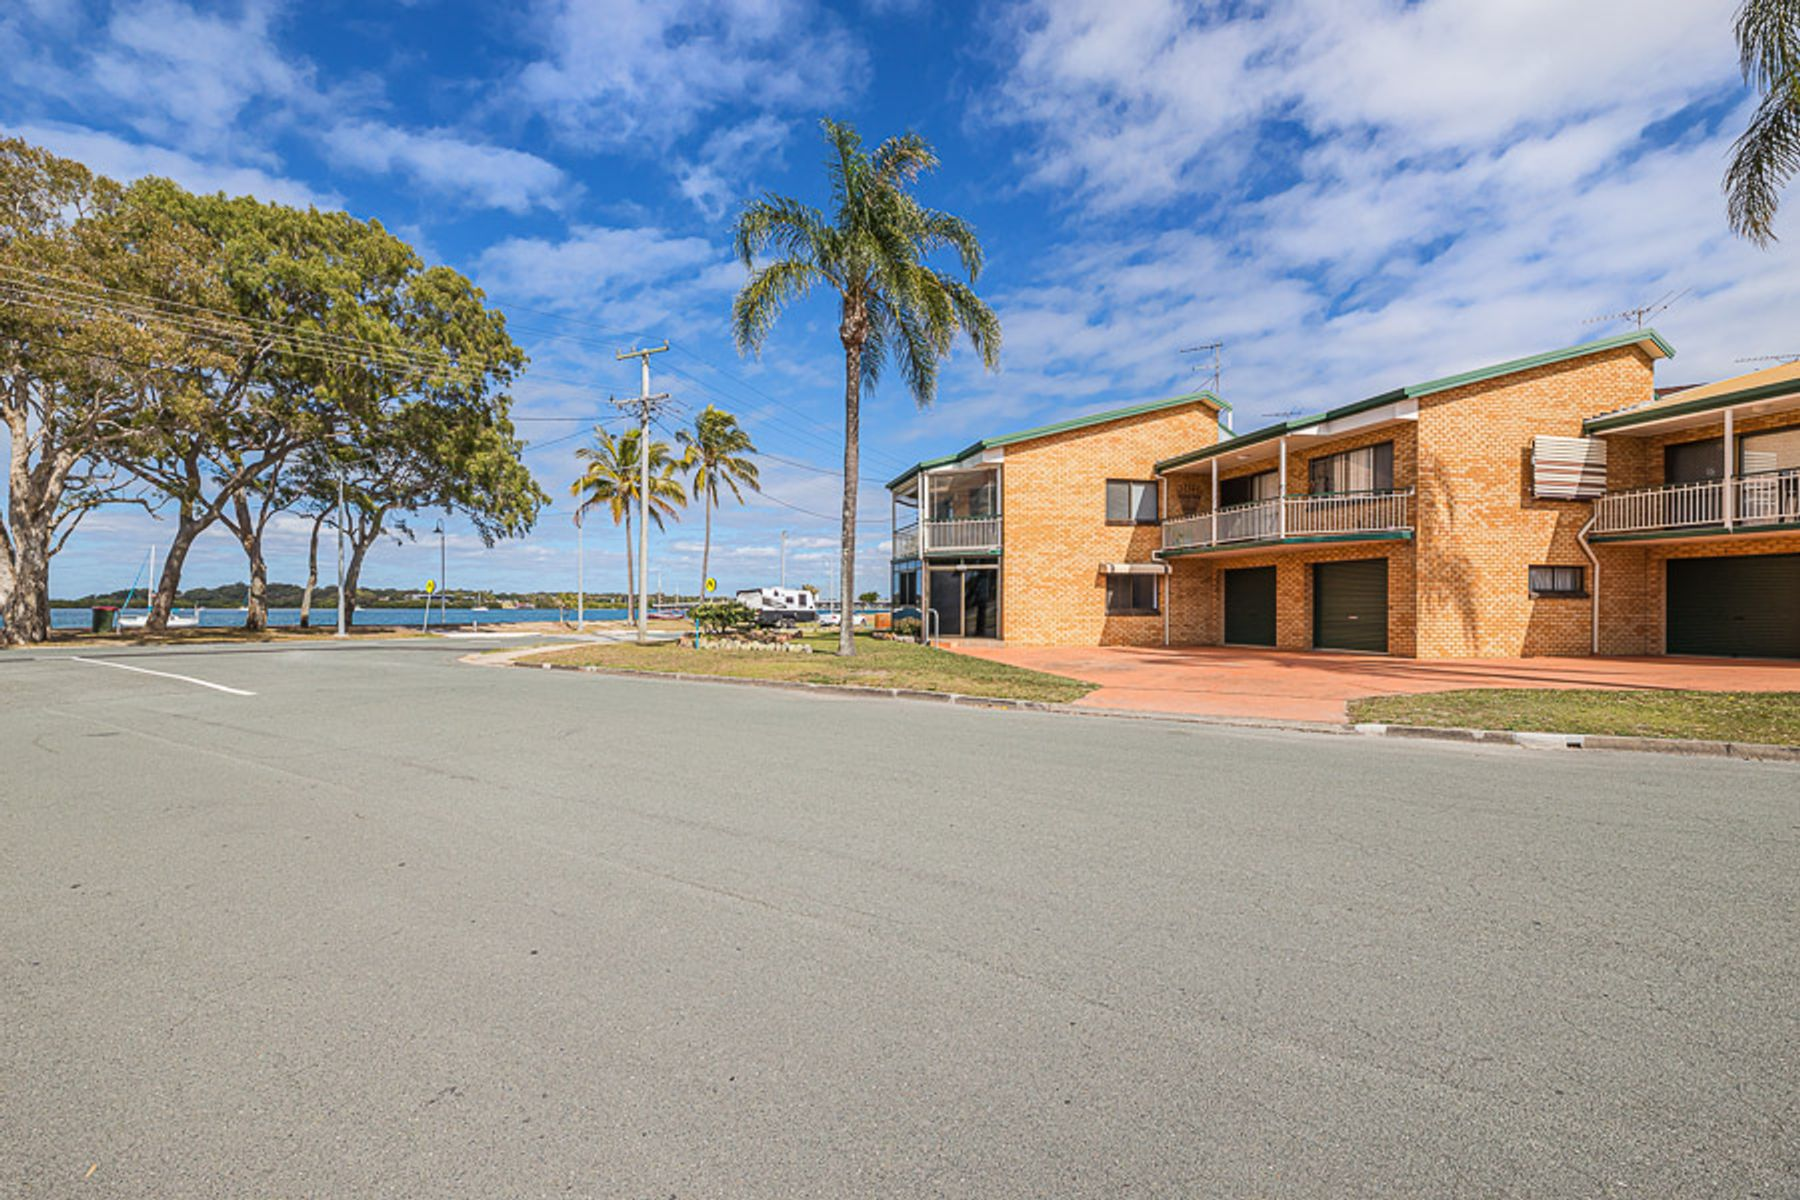 3/203 Welsby Parade, Bongaree, QLD 4507